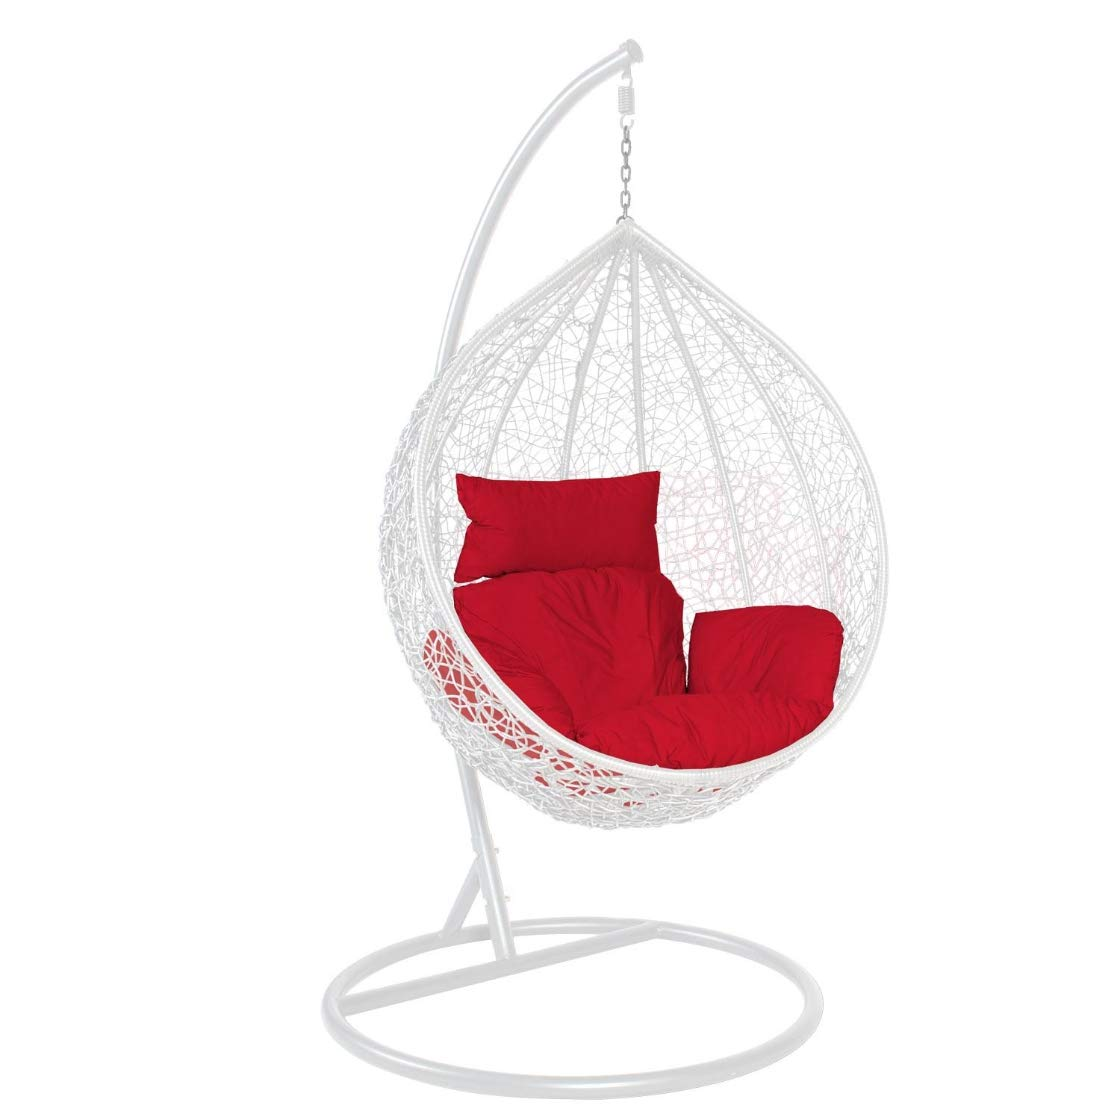 Hindoro Swing Chair with Stand and Red Cushion